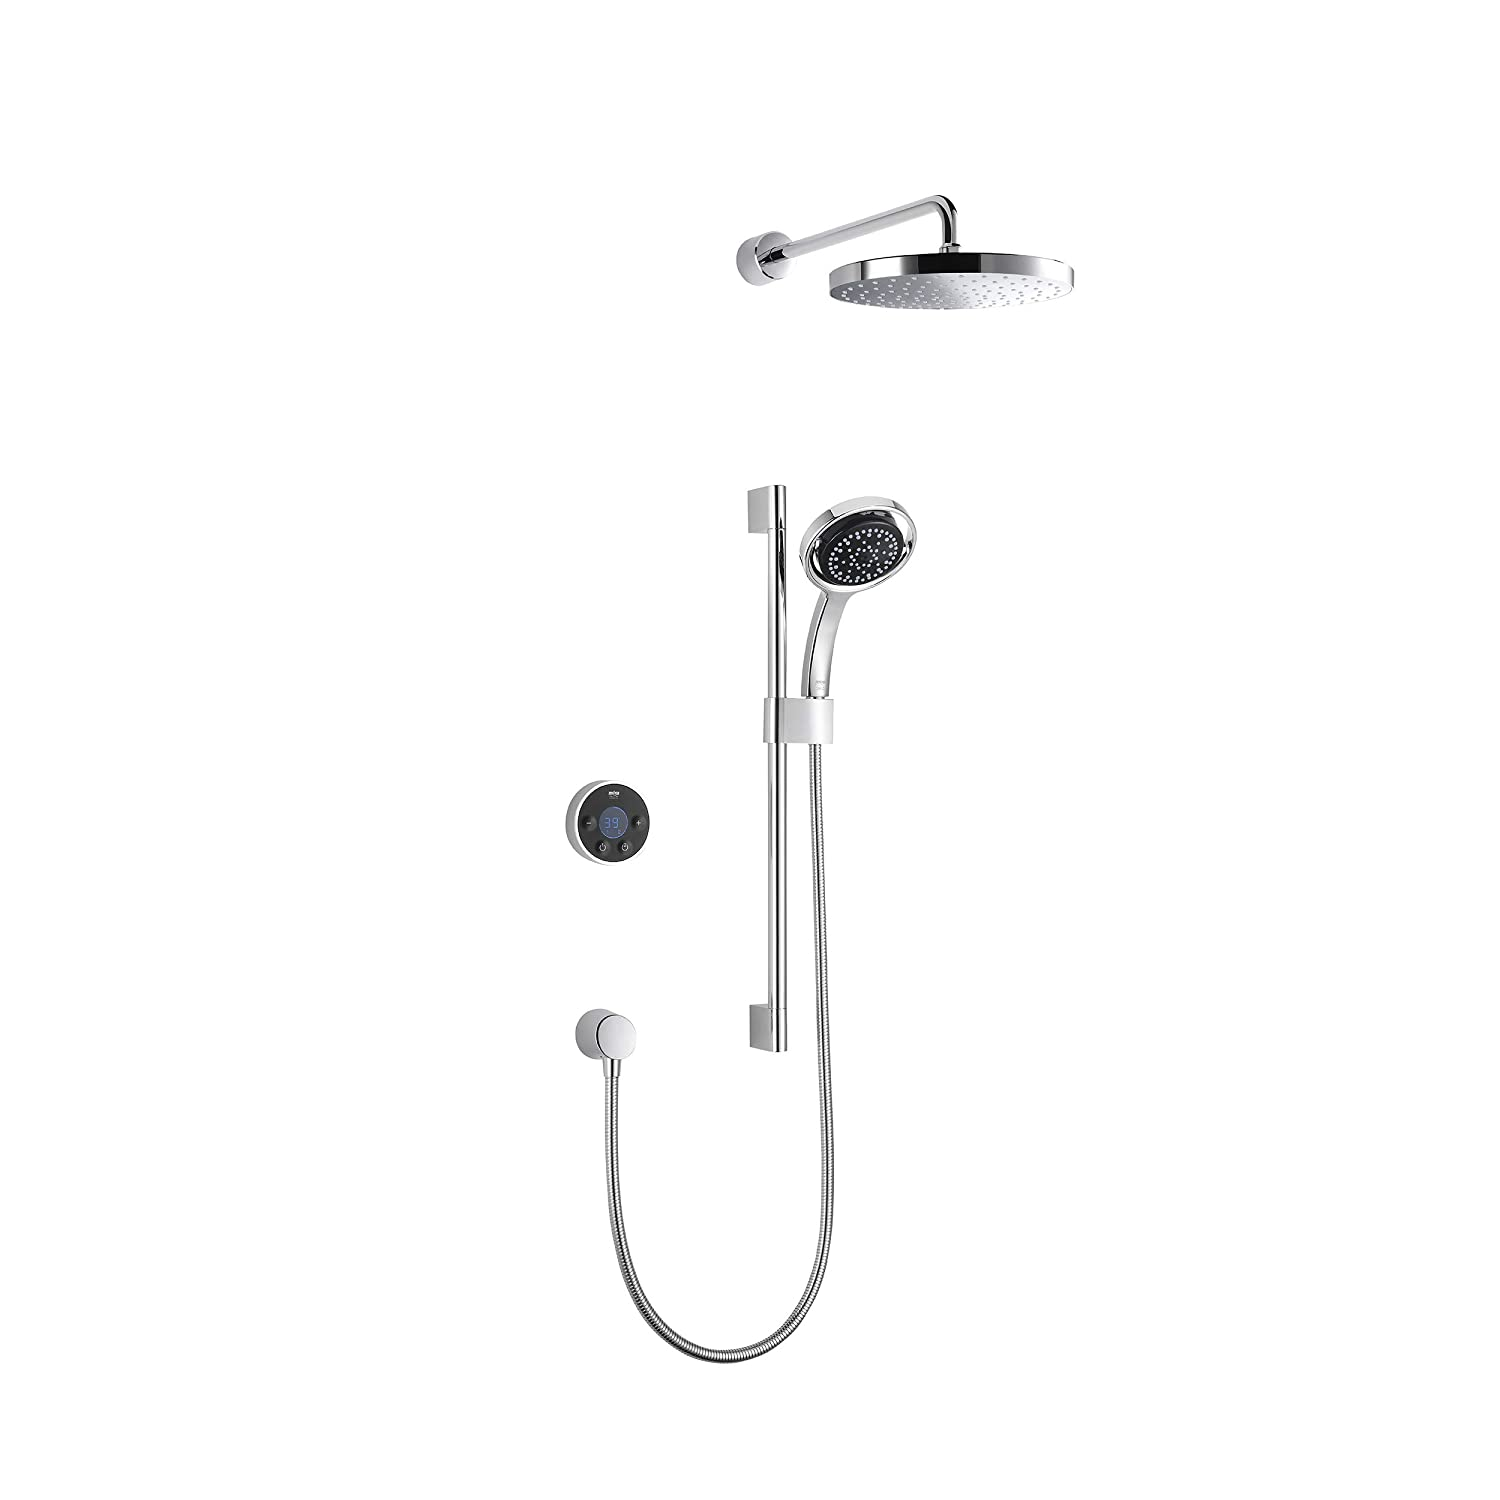 Mira Digital Shower >> Mira Showers 1 1796 003 Platinum Dual Digital Mixer Shower With Rear Fed And High Pressure Combi Boiler Black Chrome